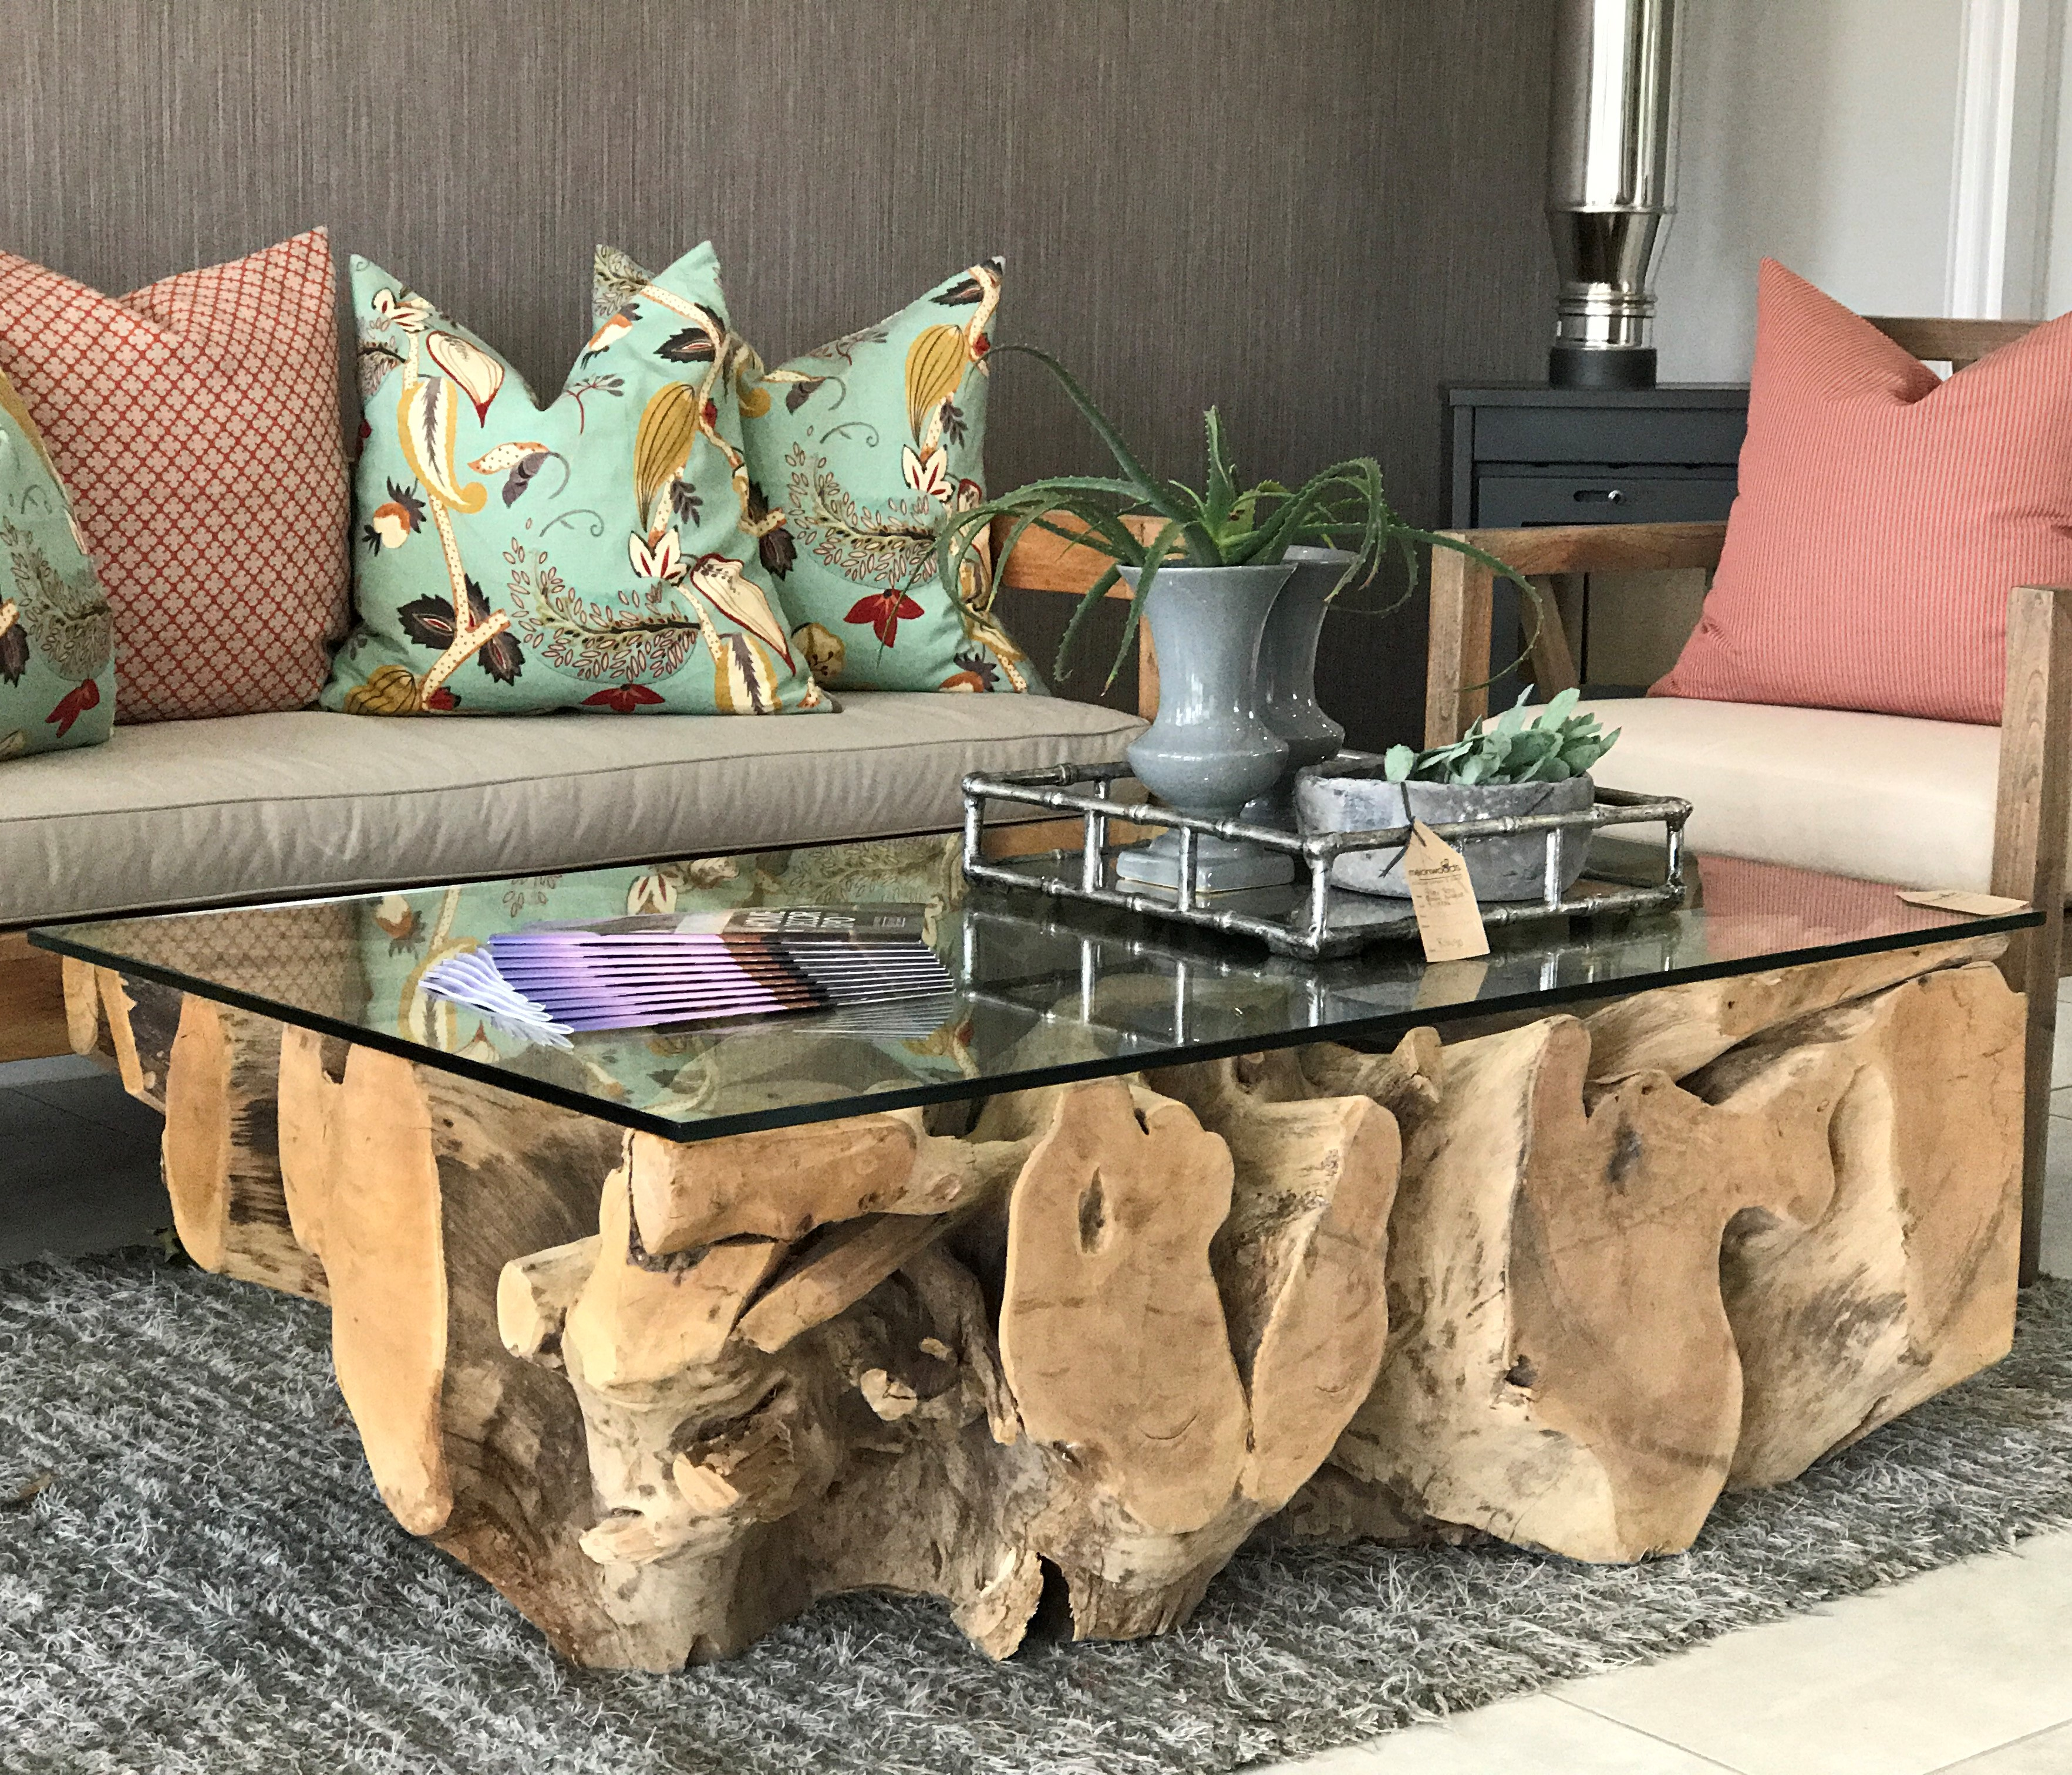 Melonwoods indonesian furniture quality wooden furnitureroot root coffee table geotapseo Image collections